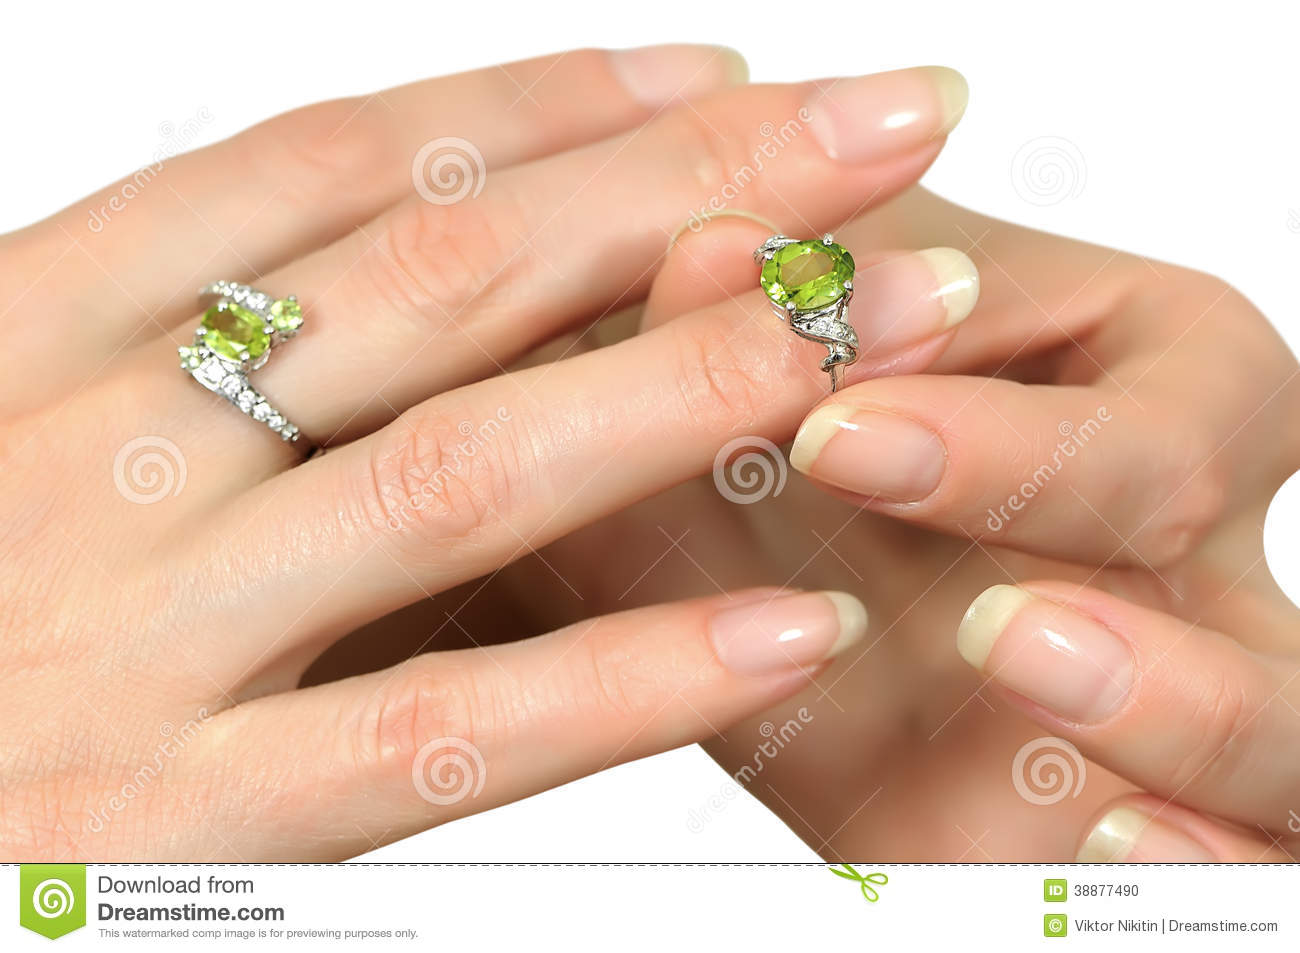 Silver Ring With Peridot On Finger Stock Photo Image Of White